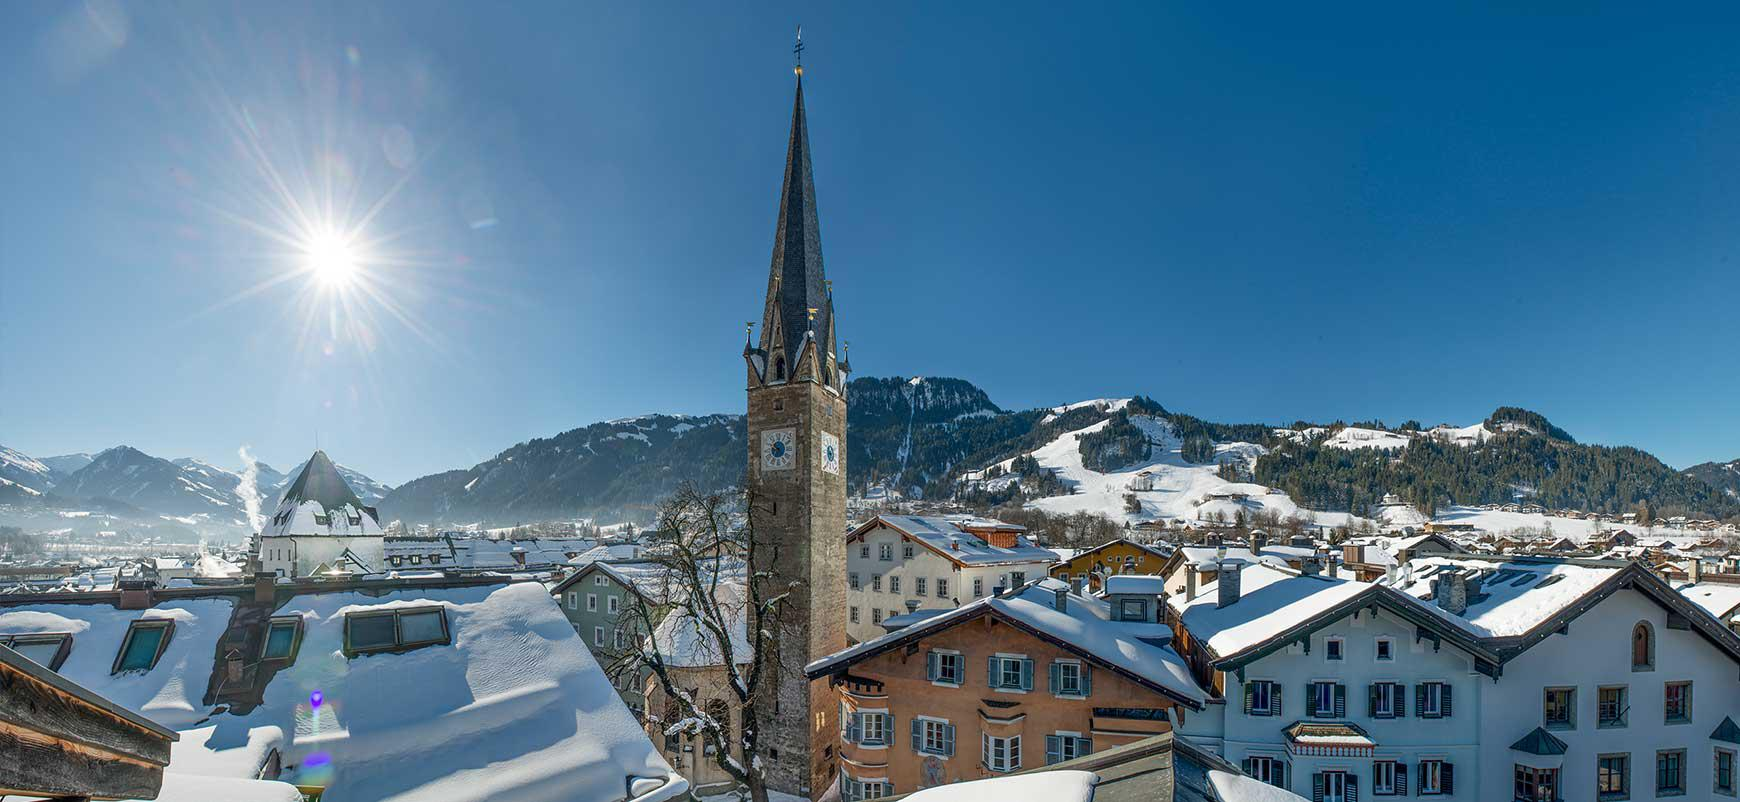 Popular Hotel in finest location in Kitzbuehel For Sale - Kitzbuehel